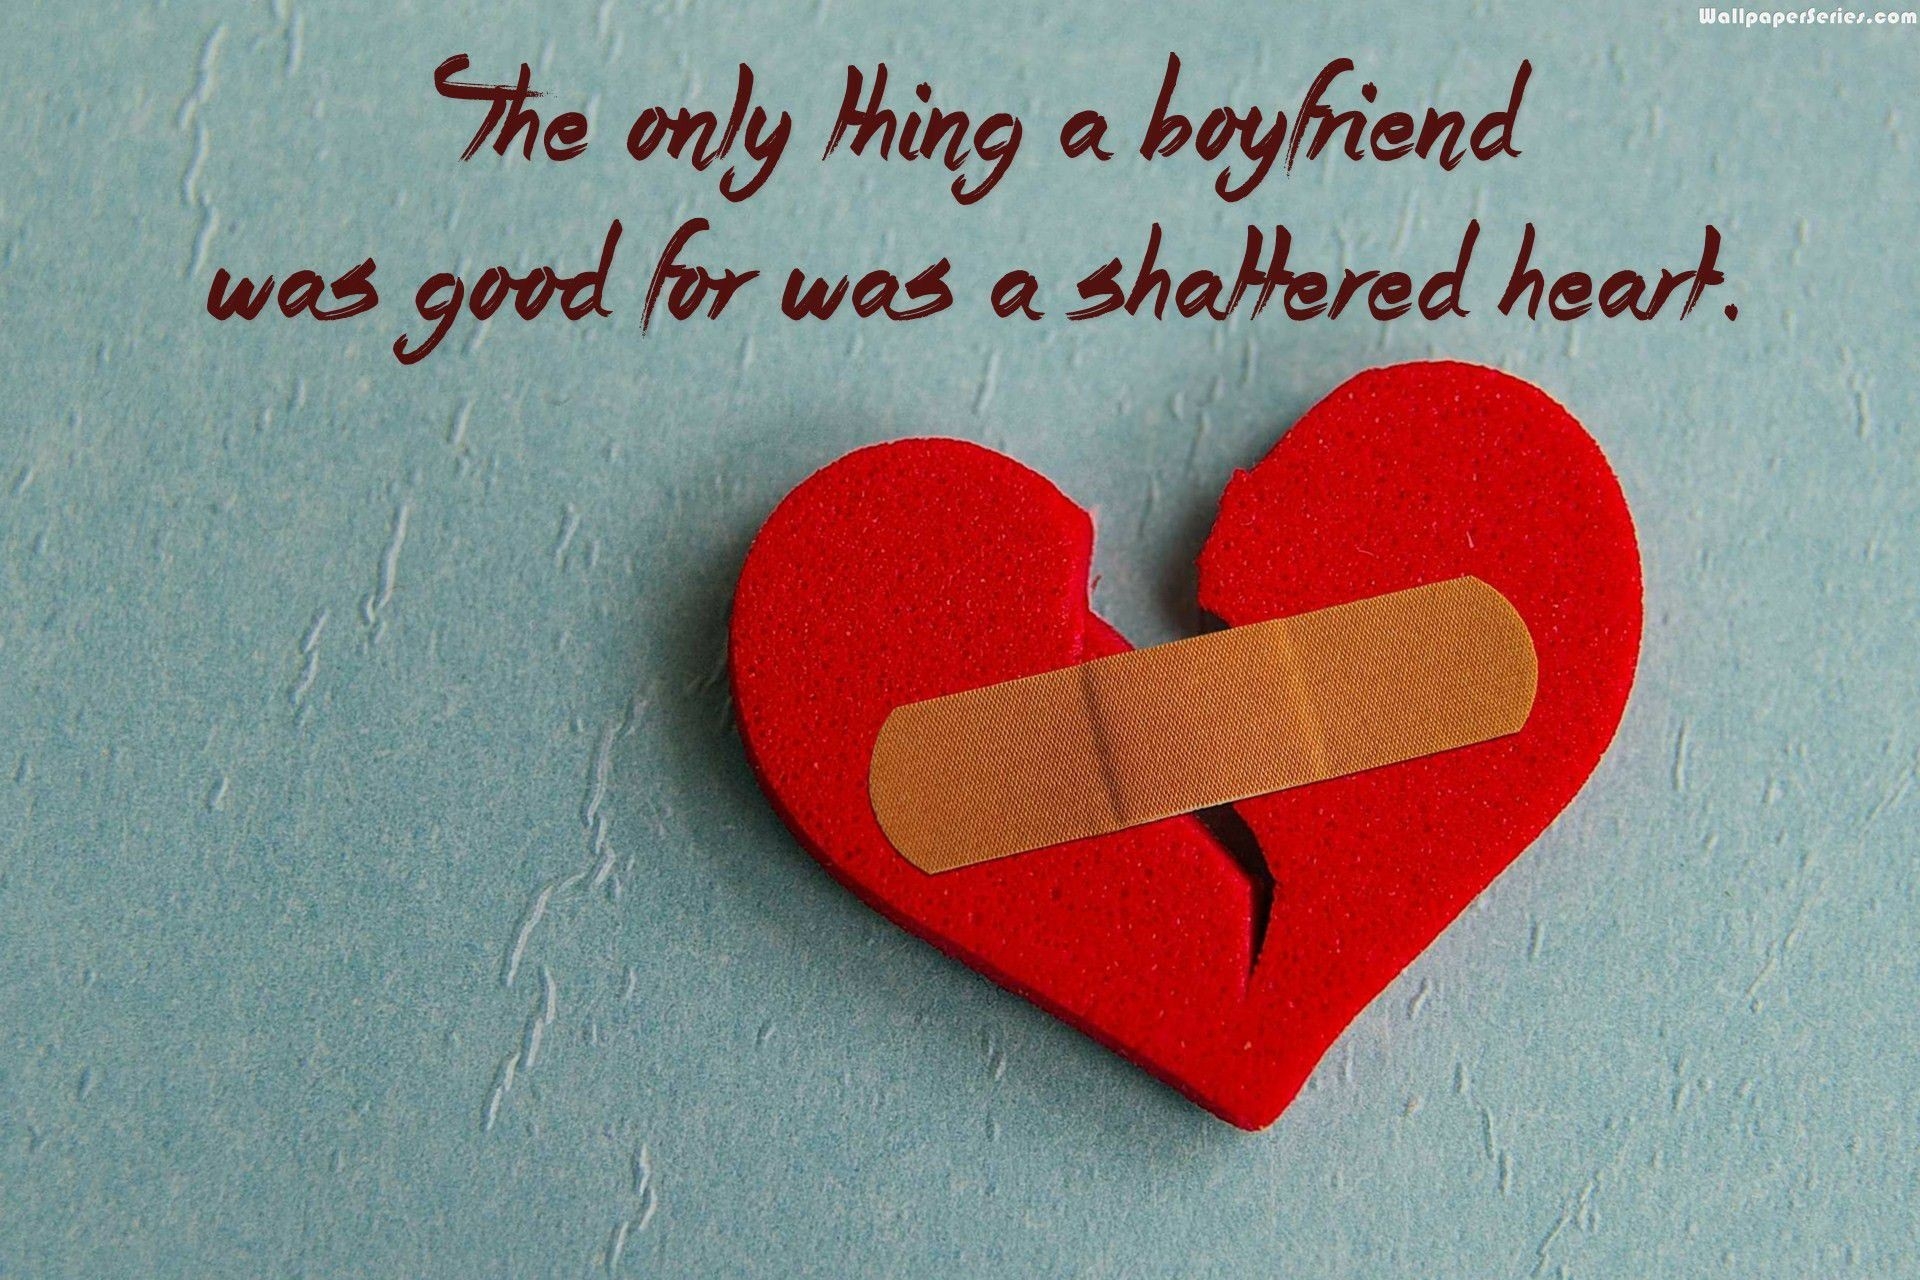 1920x1280 Boyfriend broken heart quotes wallpaper